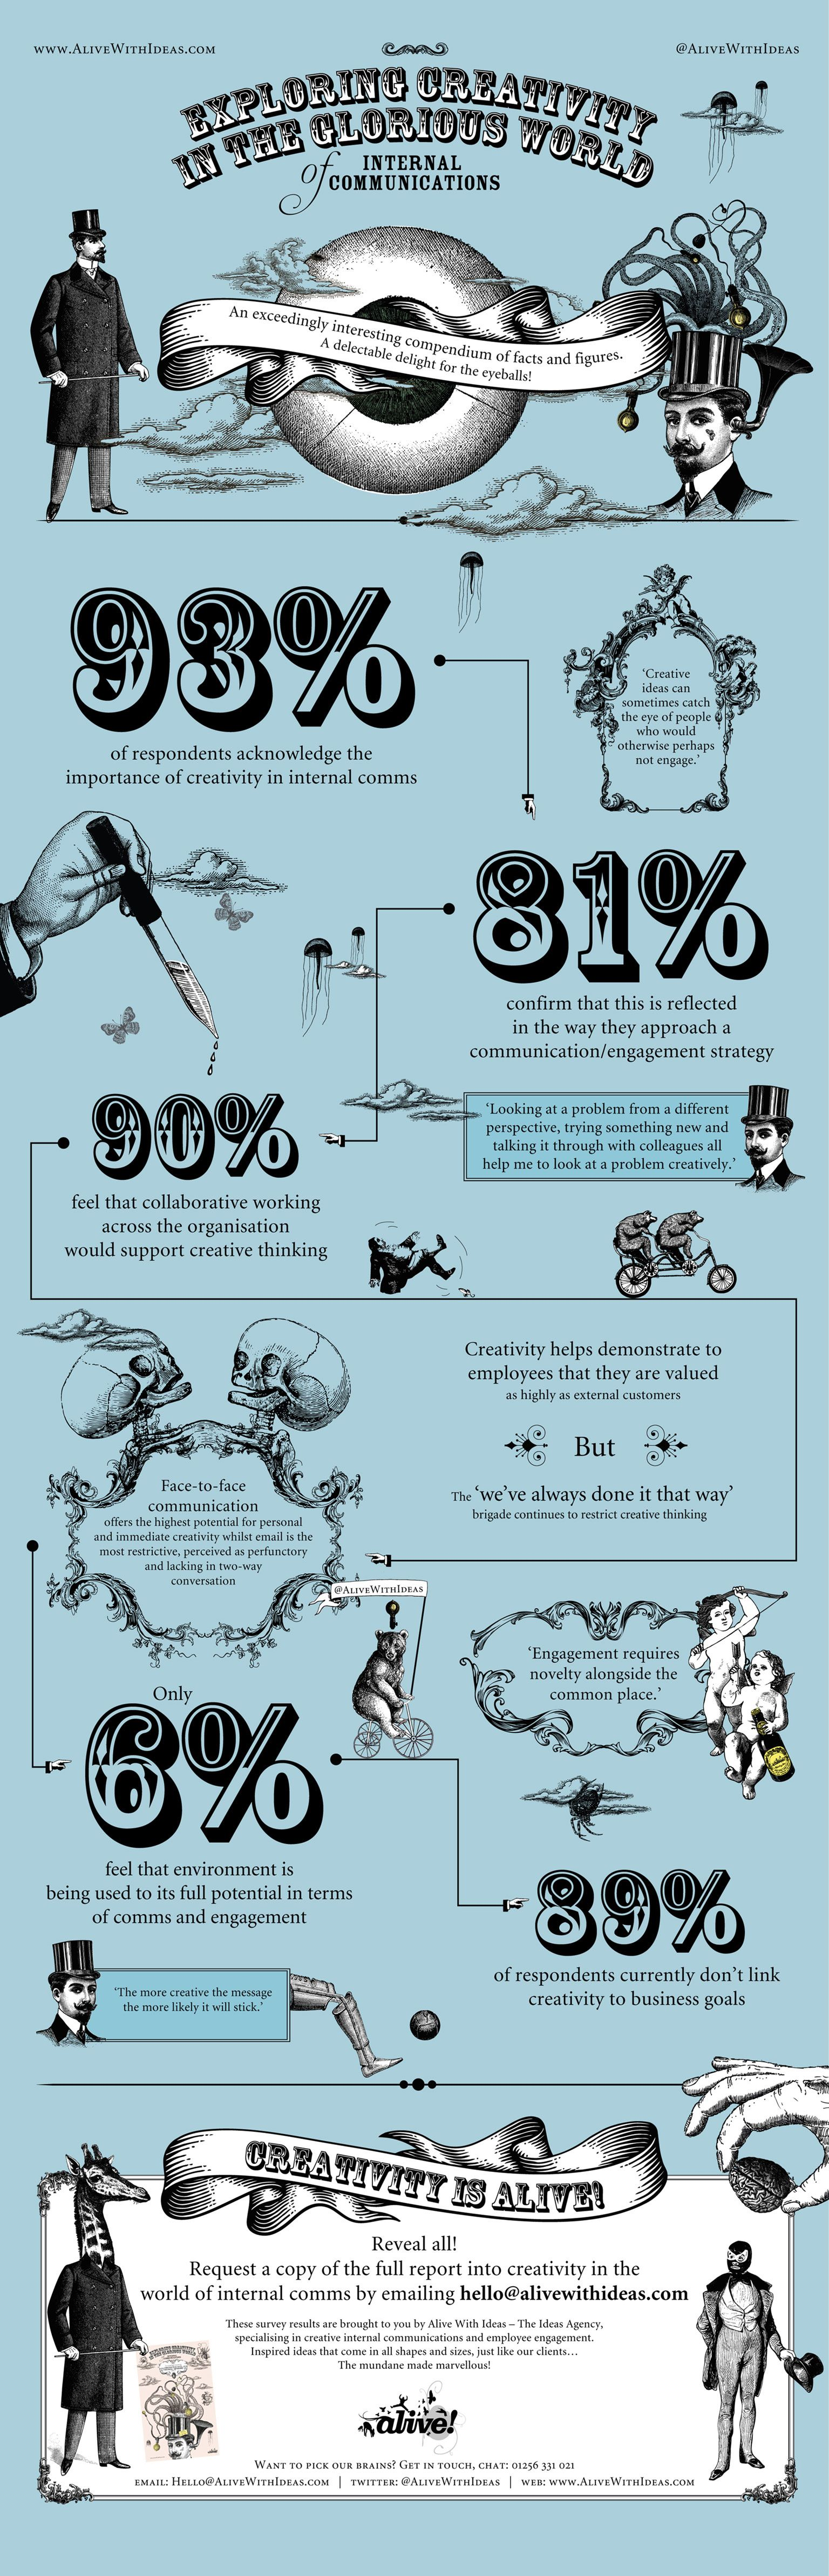 Exploring Creativity in Internal Communications #infographic